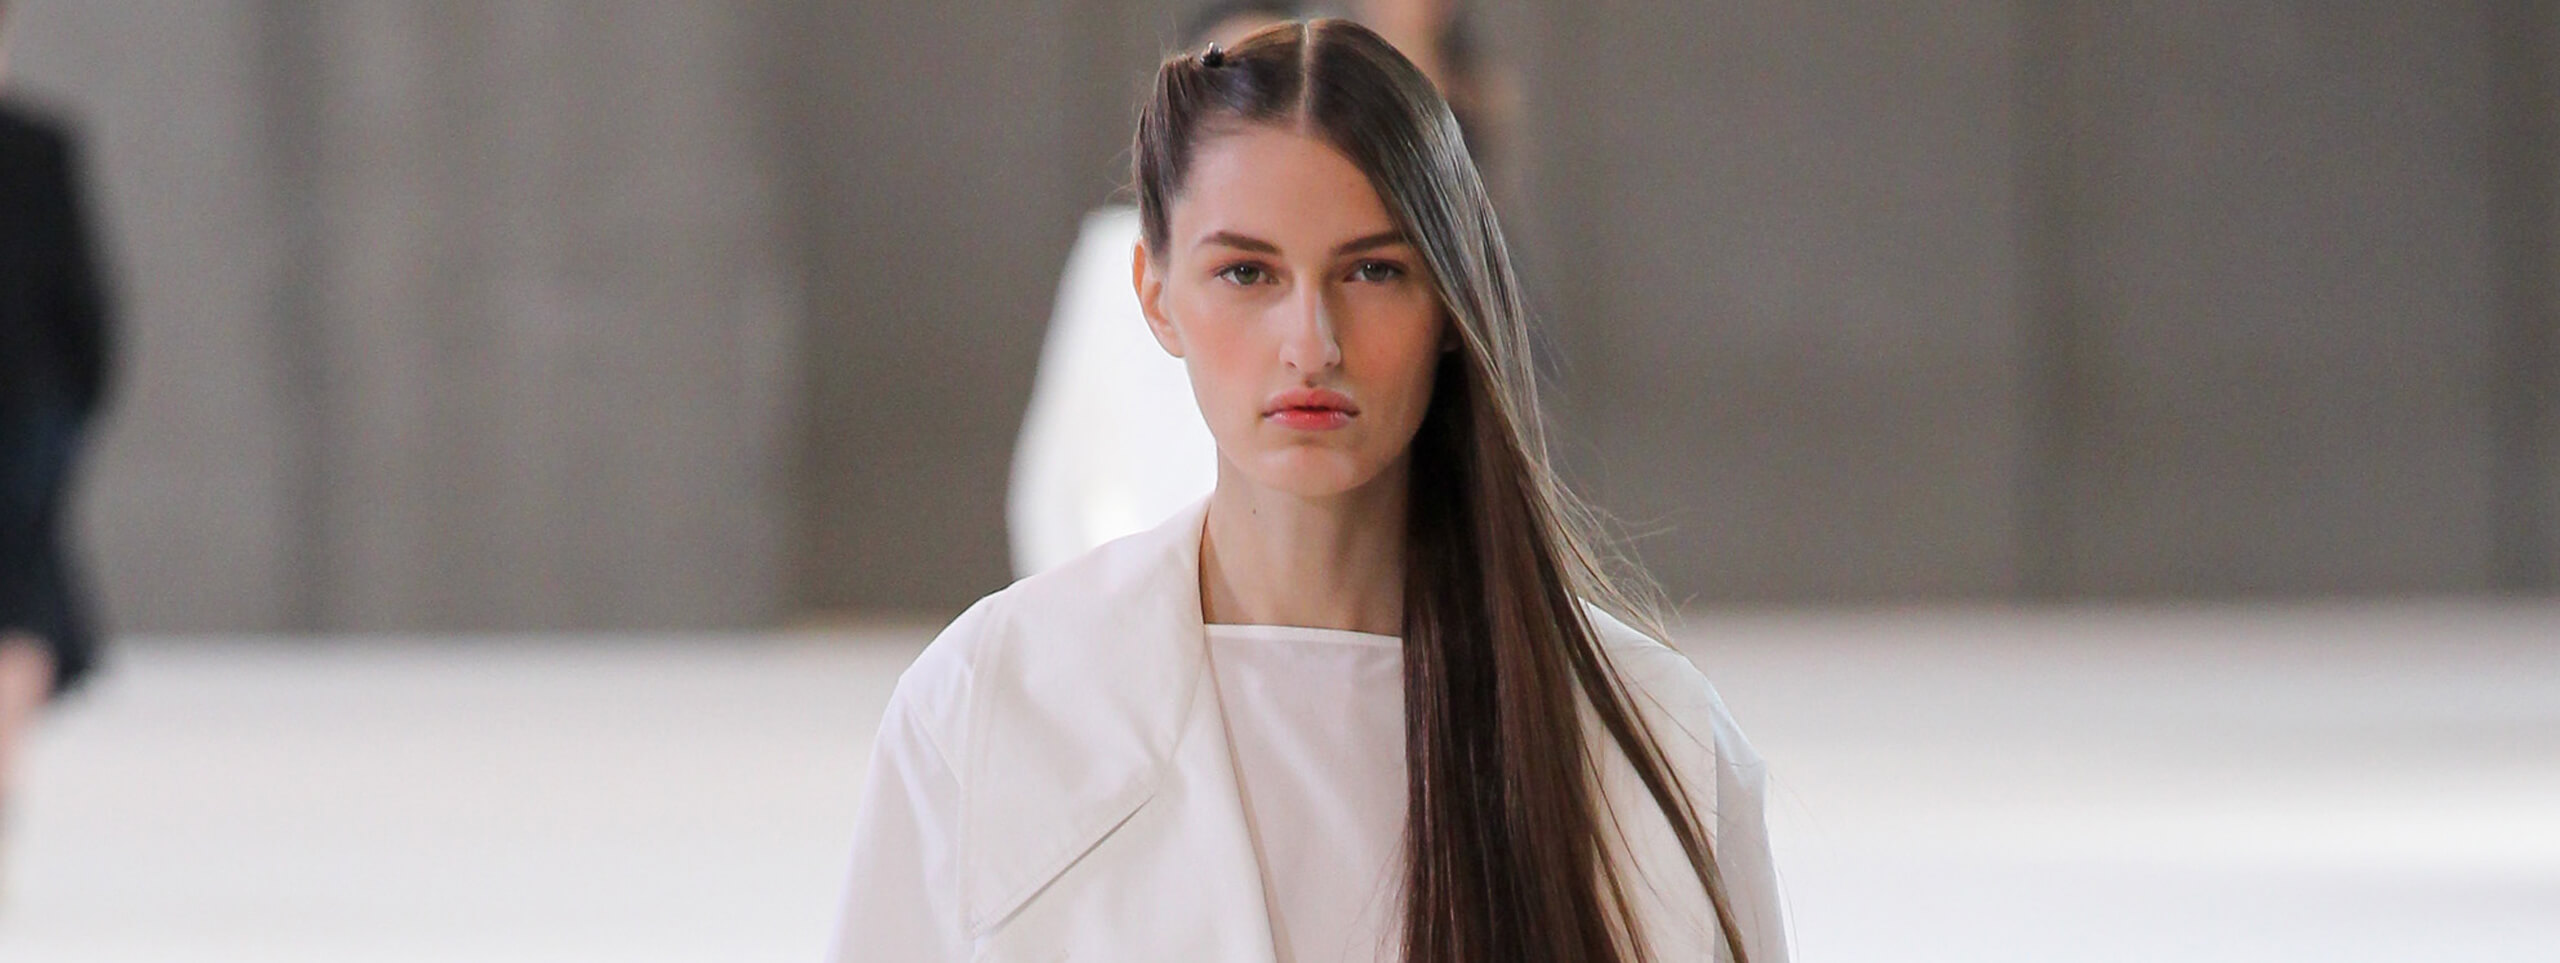 Model with long sleek hairstyle braided on one side